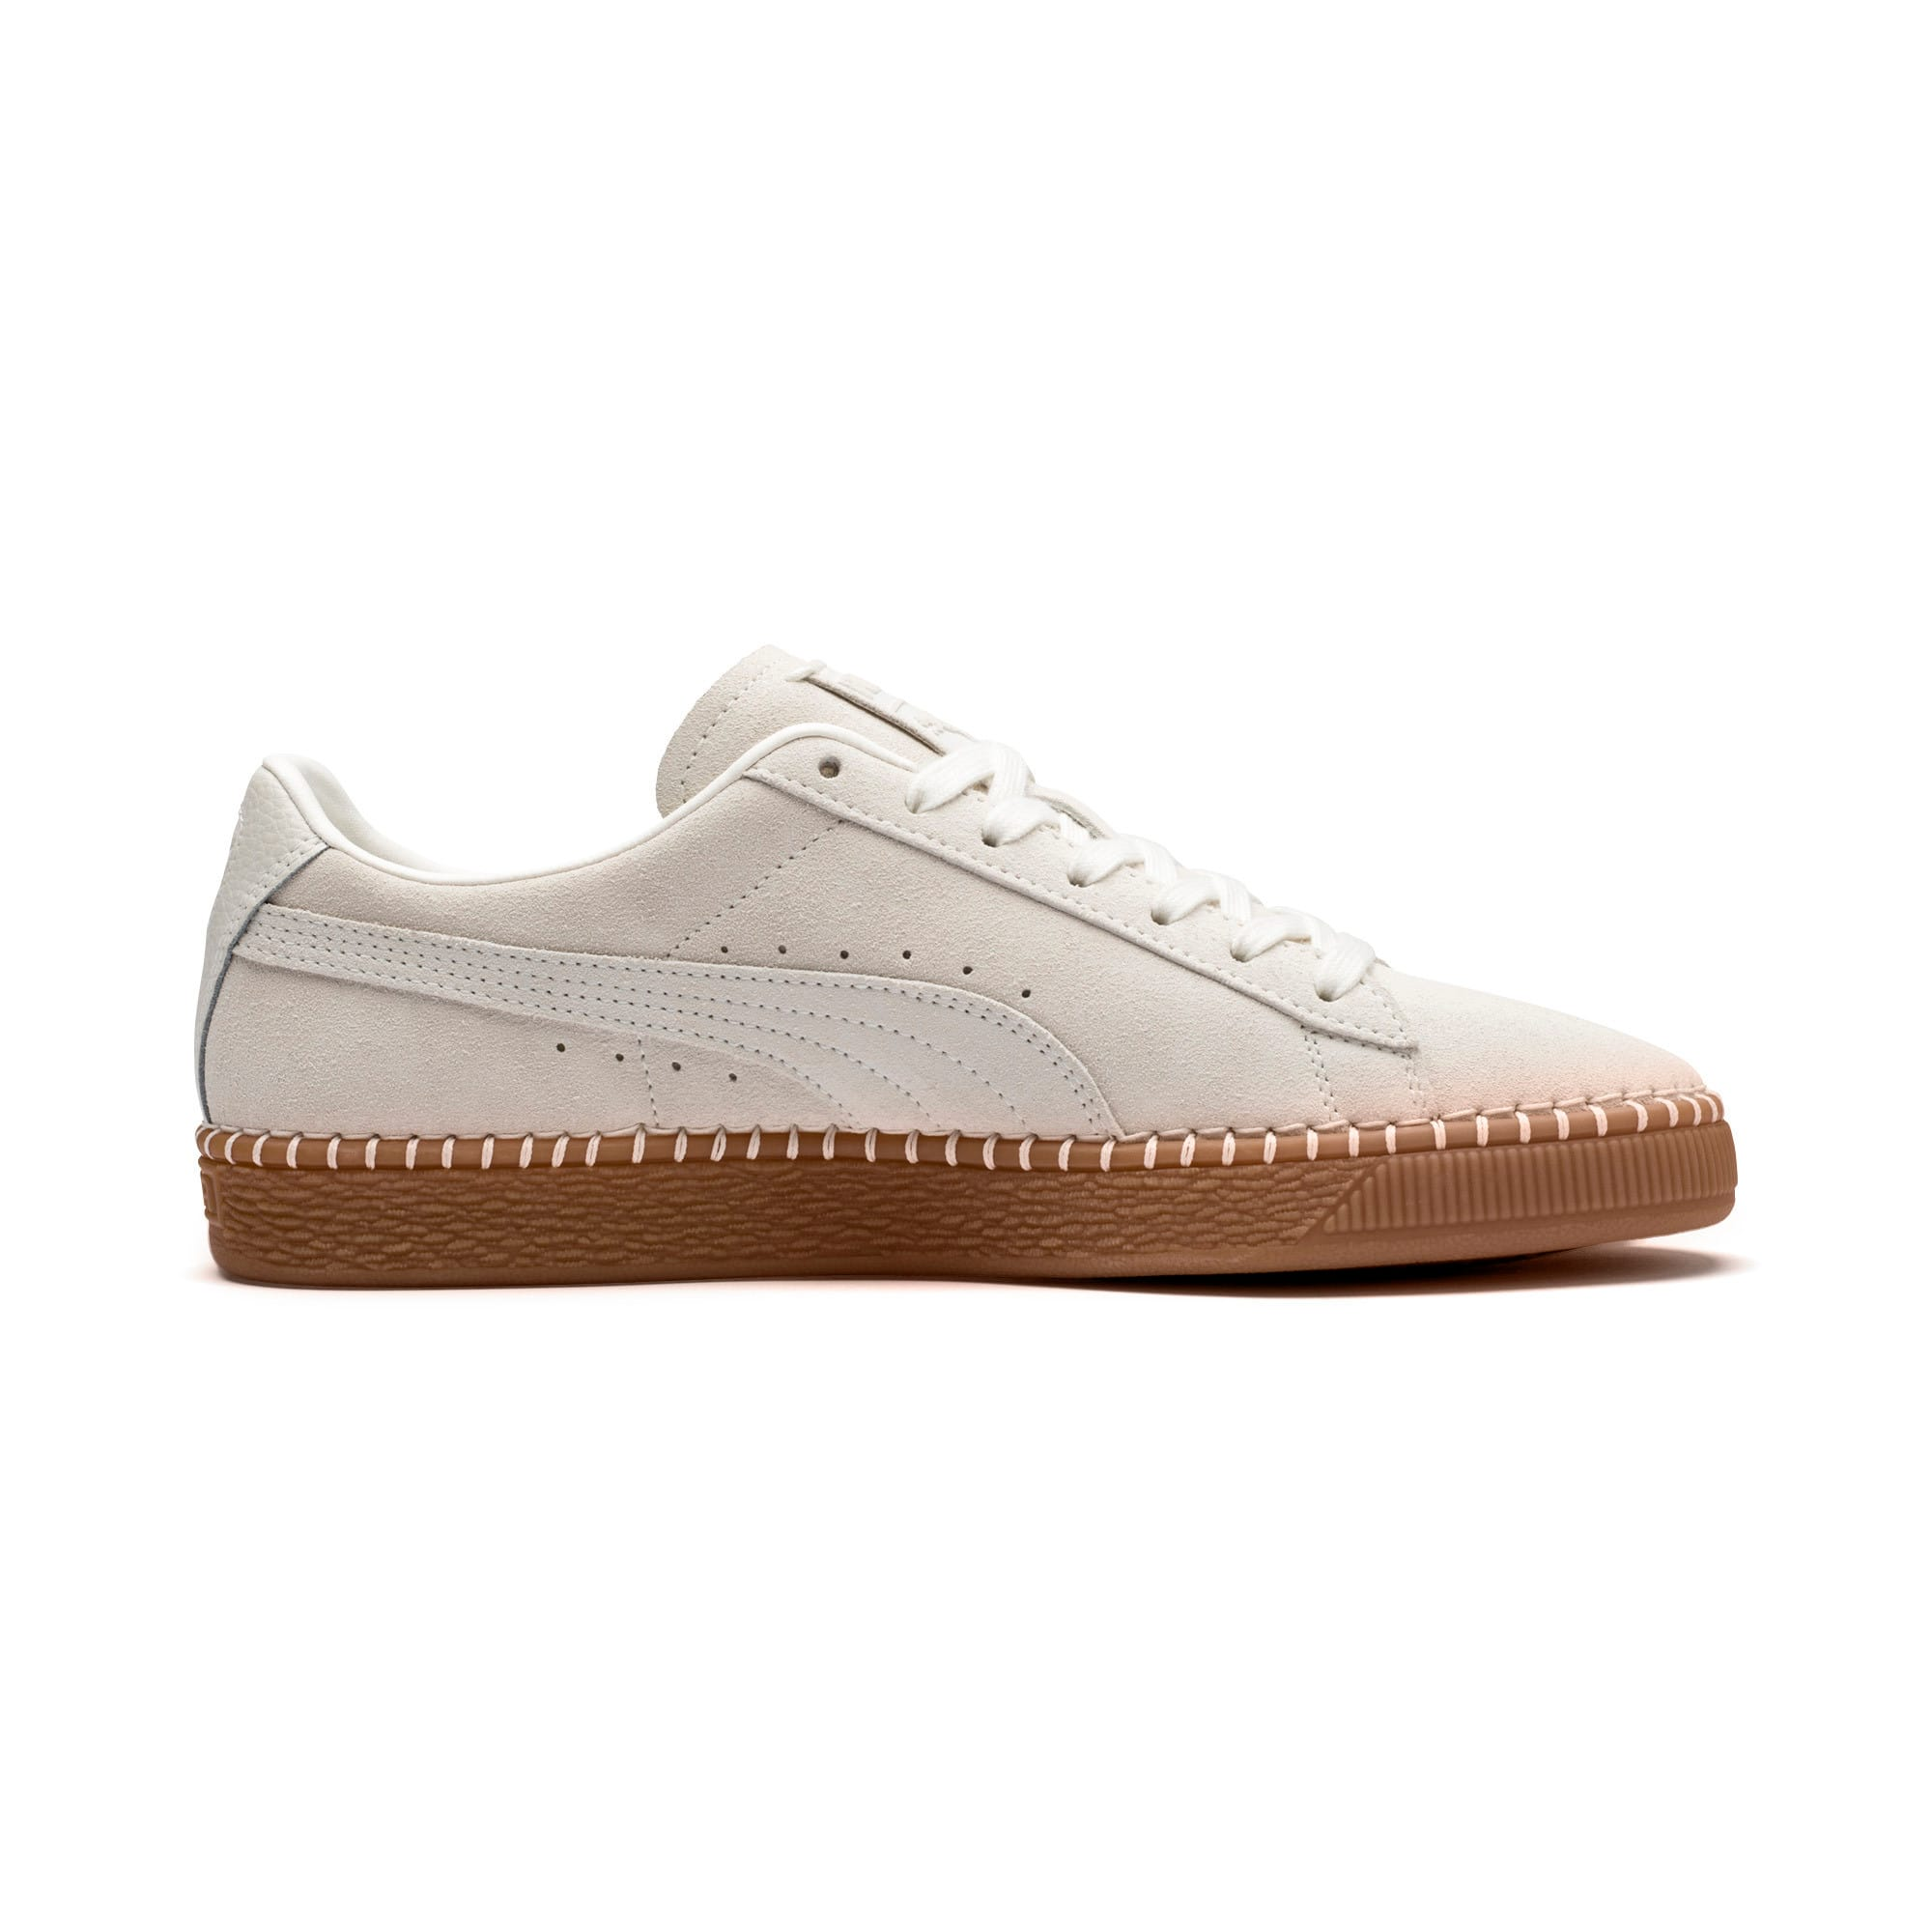 Thumbnail 6 of Suede Classic Blanket Stitch Trainers, Whisper White-Gum, medium-IND